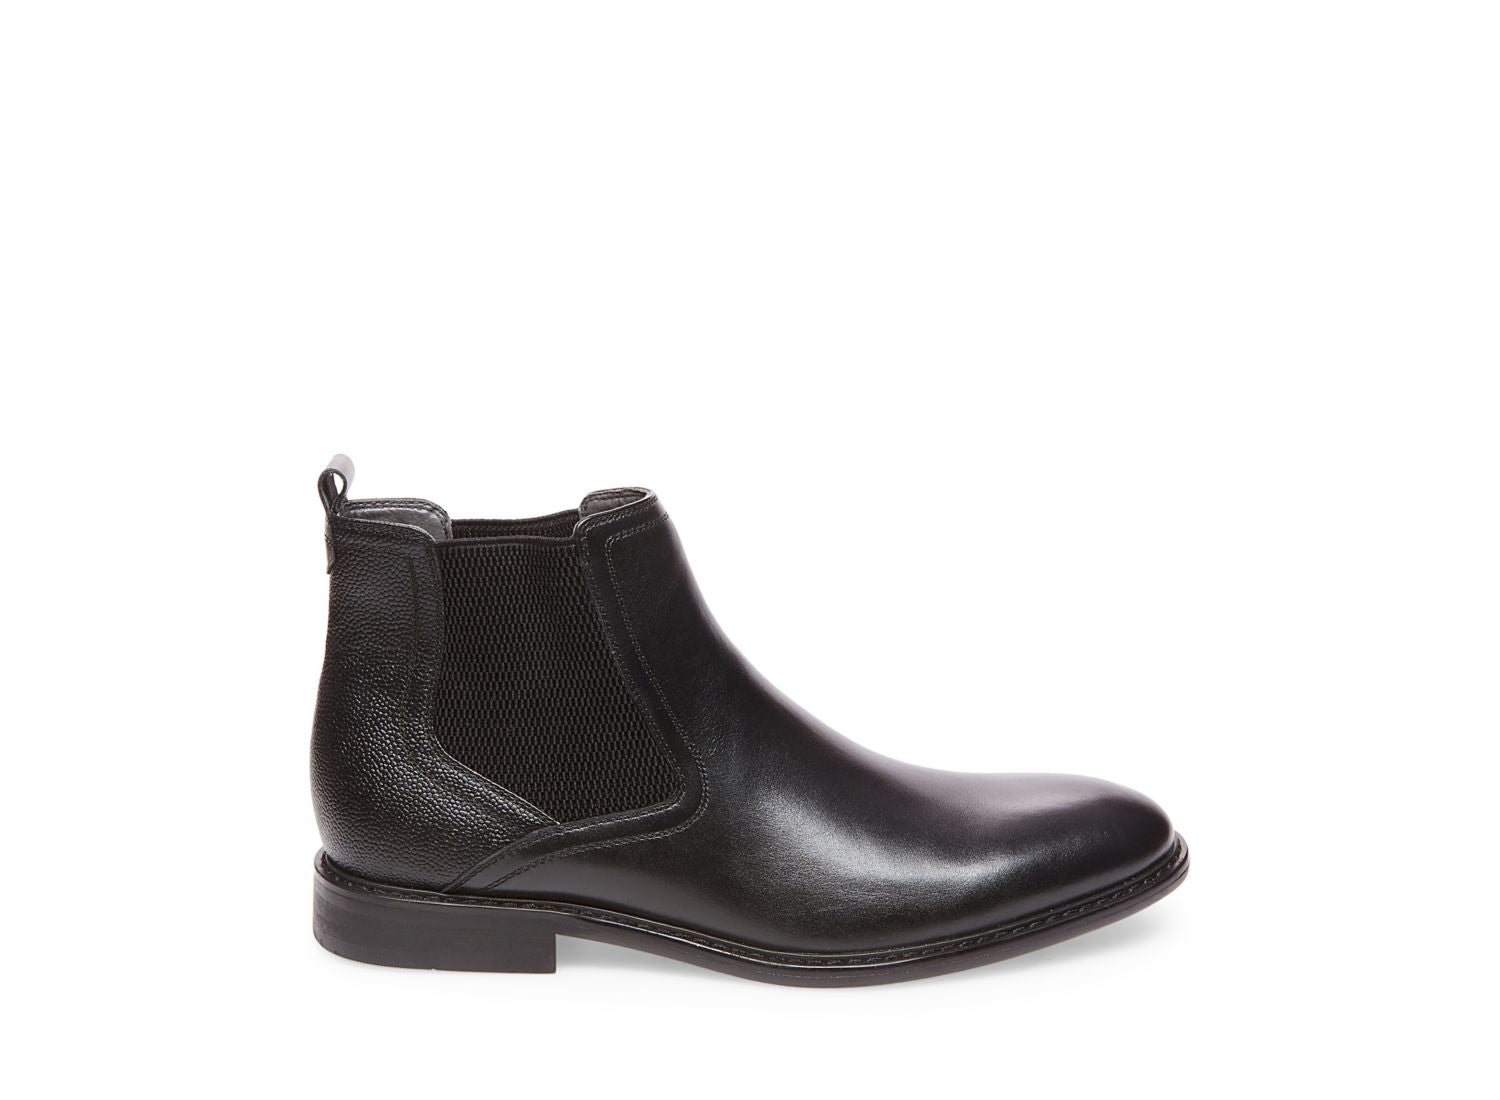 AZIZ BLACK LEATHER - Steve Madden